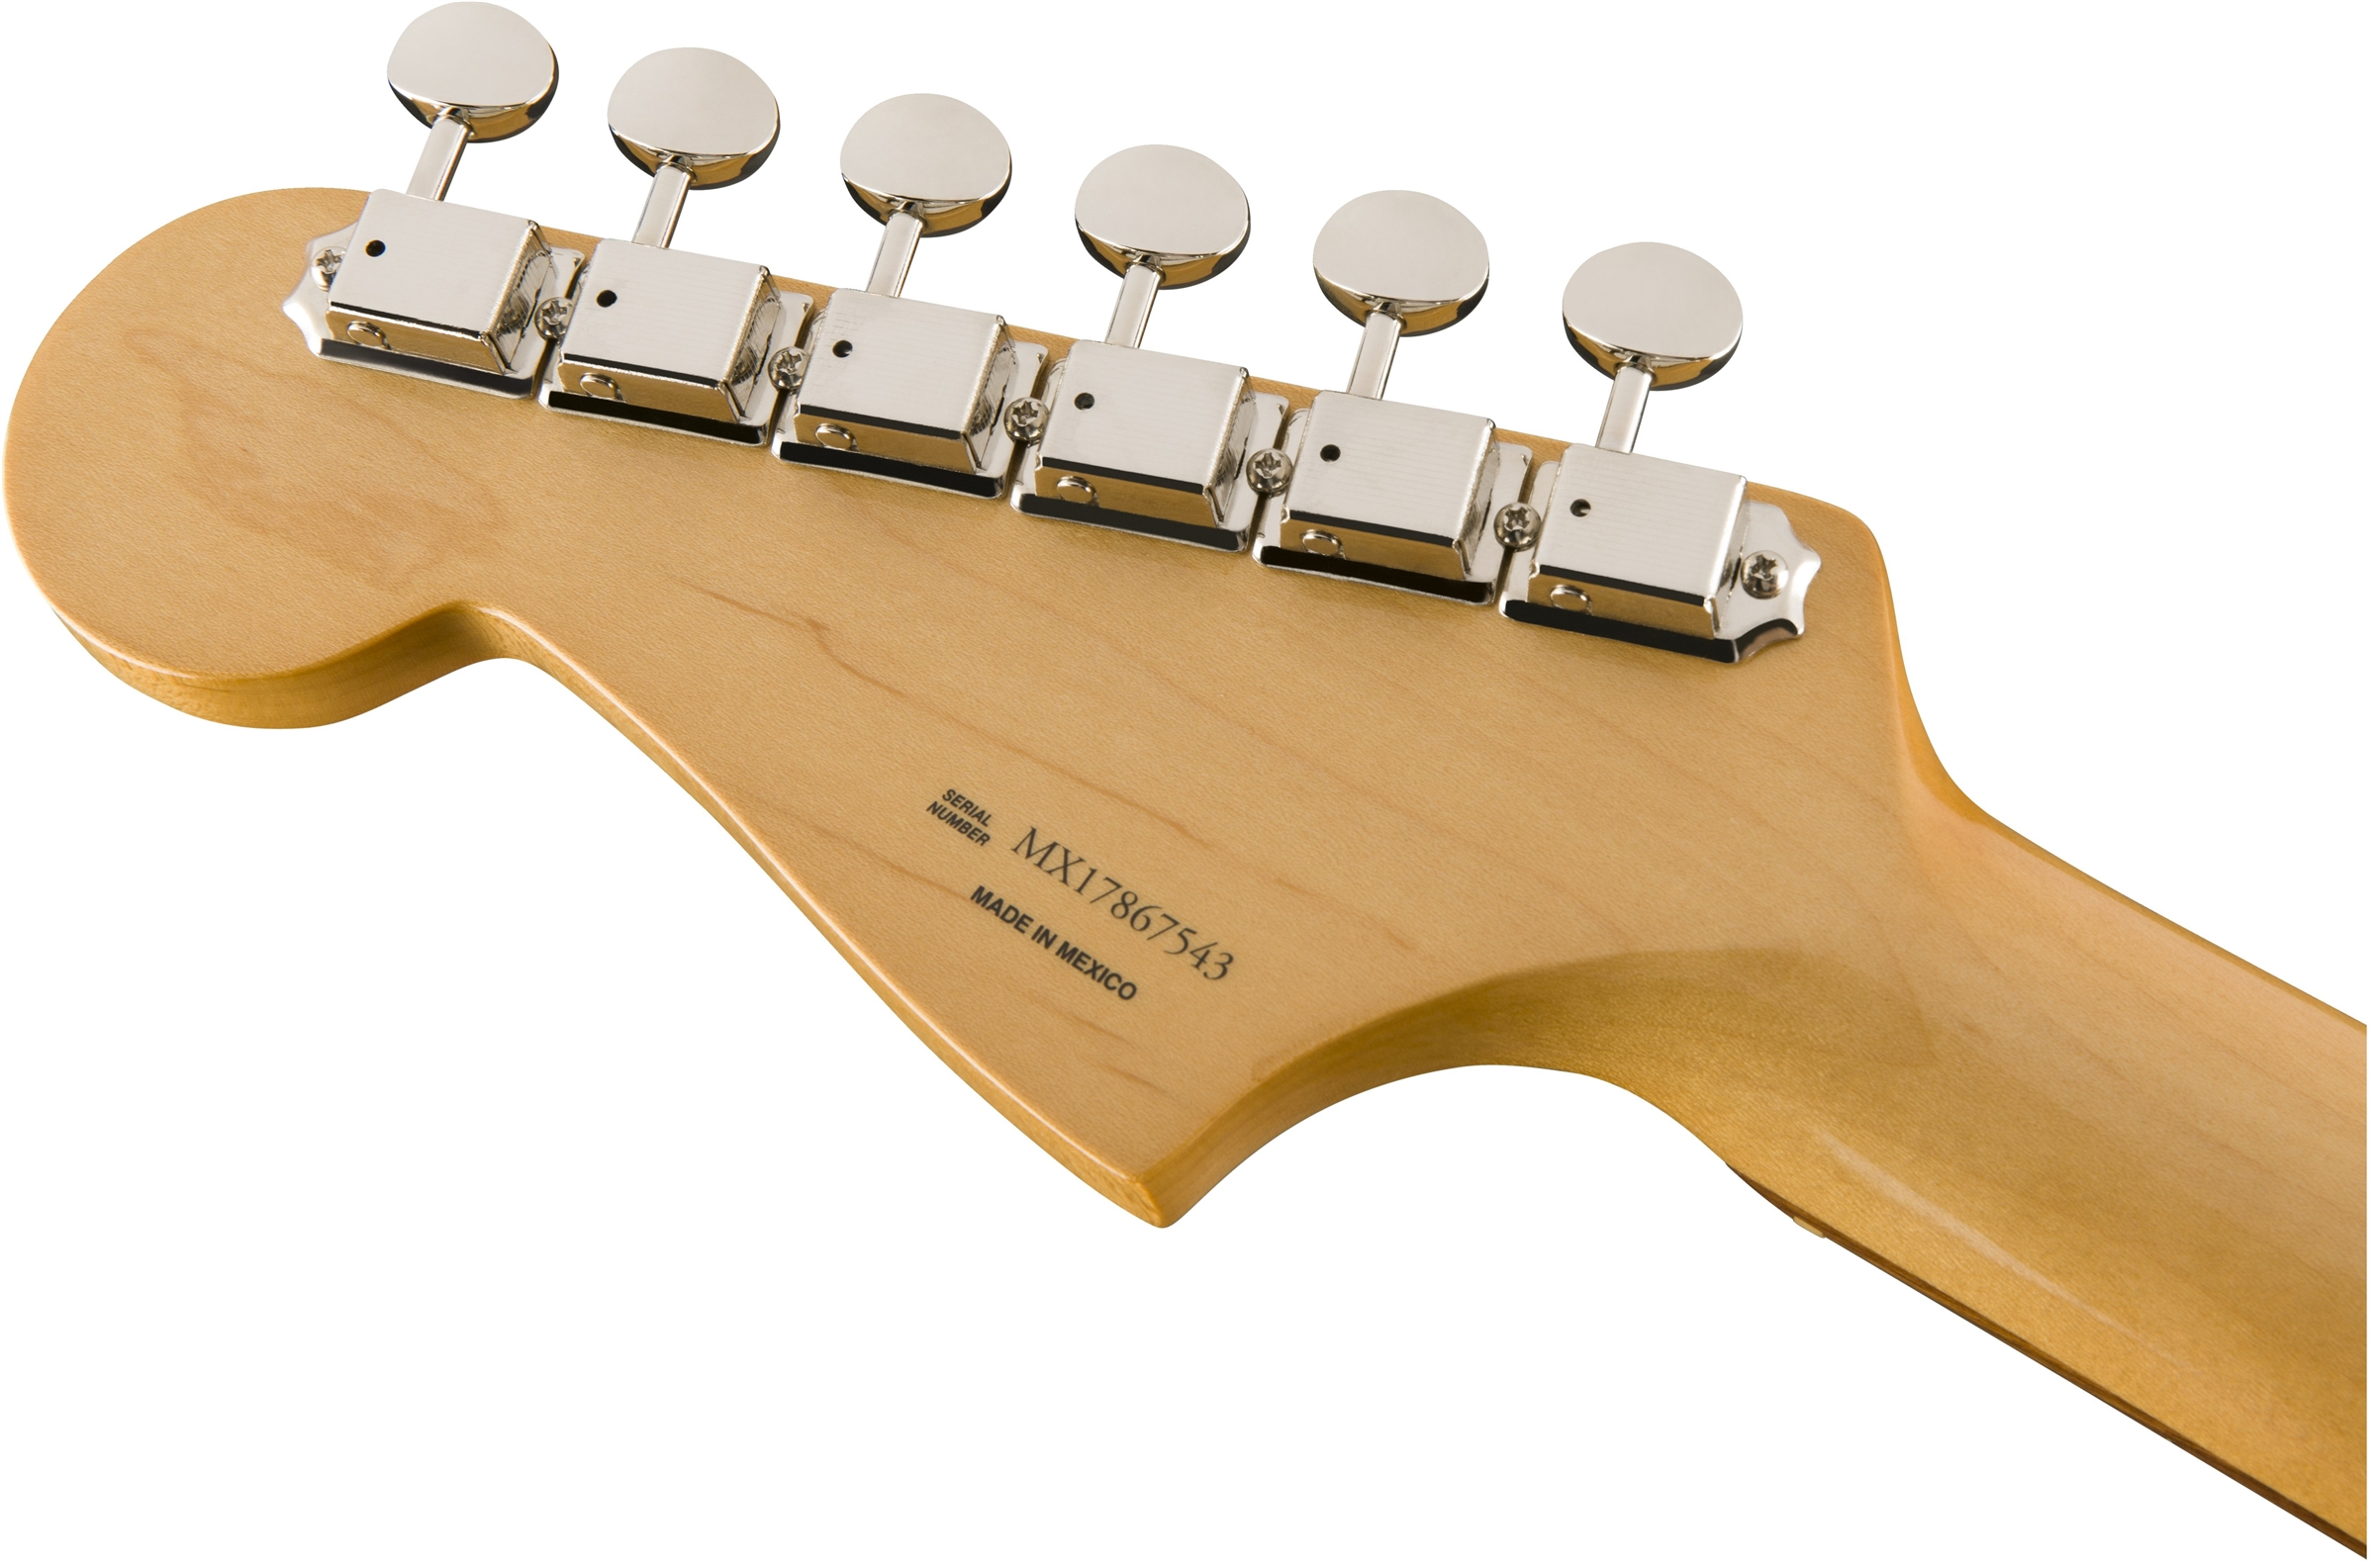 mexican strat wiring diagram with Fender Mexican Standard Stratocaster Wiring Diagram on Fender Wiring Diagrams further Viewtopic likewise Strat Wiring Diagrams likewise Hs Wiring Diagram besides Fender Bullit 3 Way Switch Wiring Diagram.